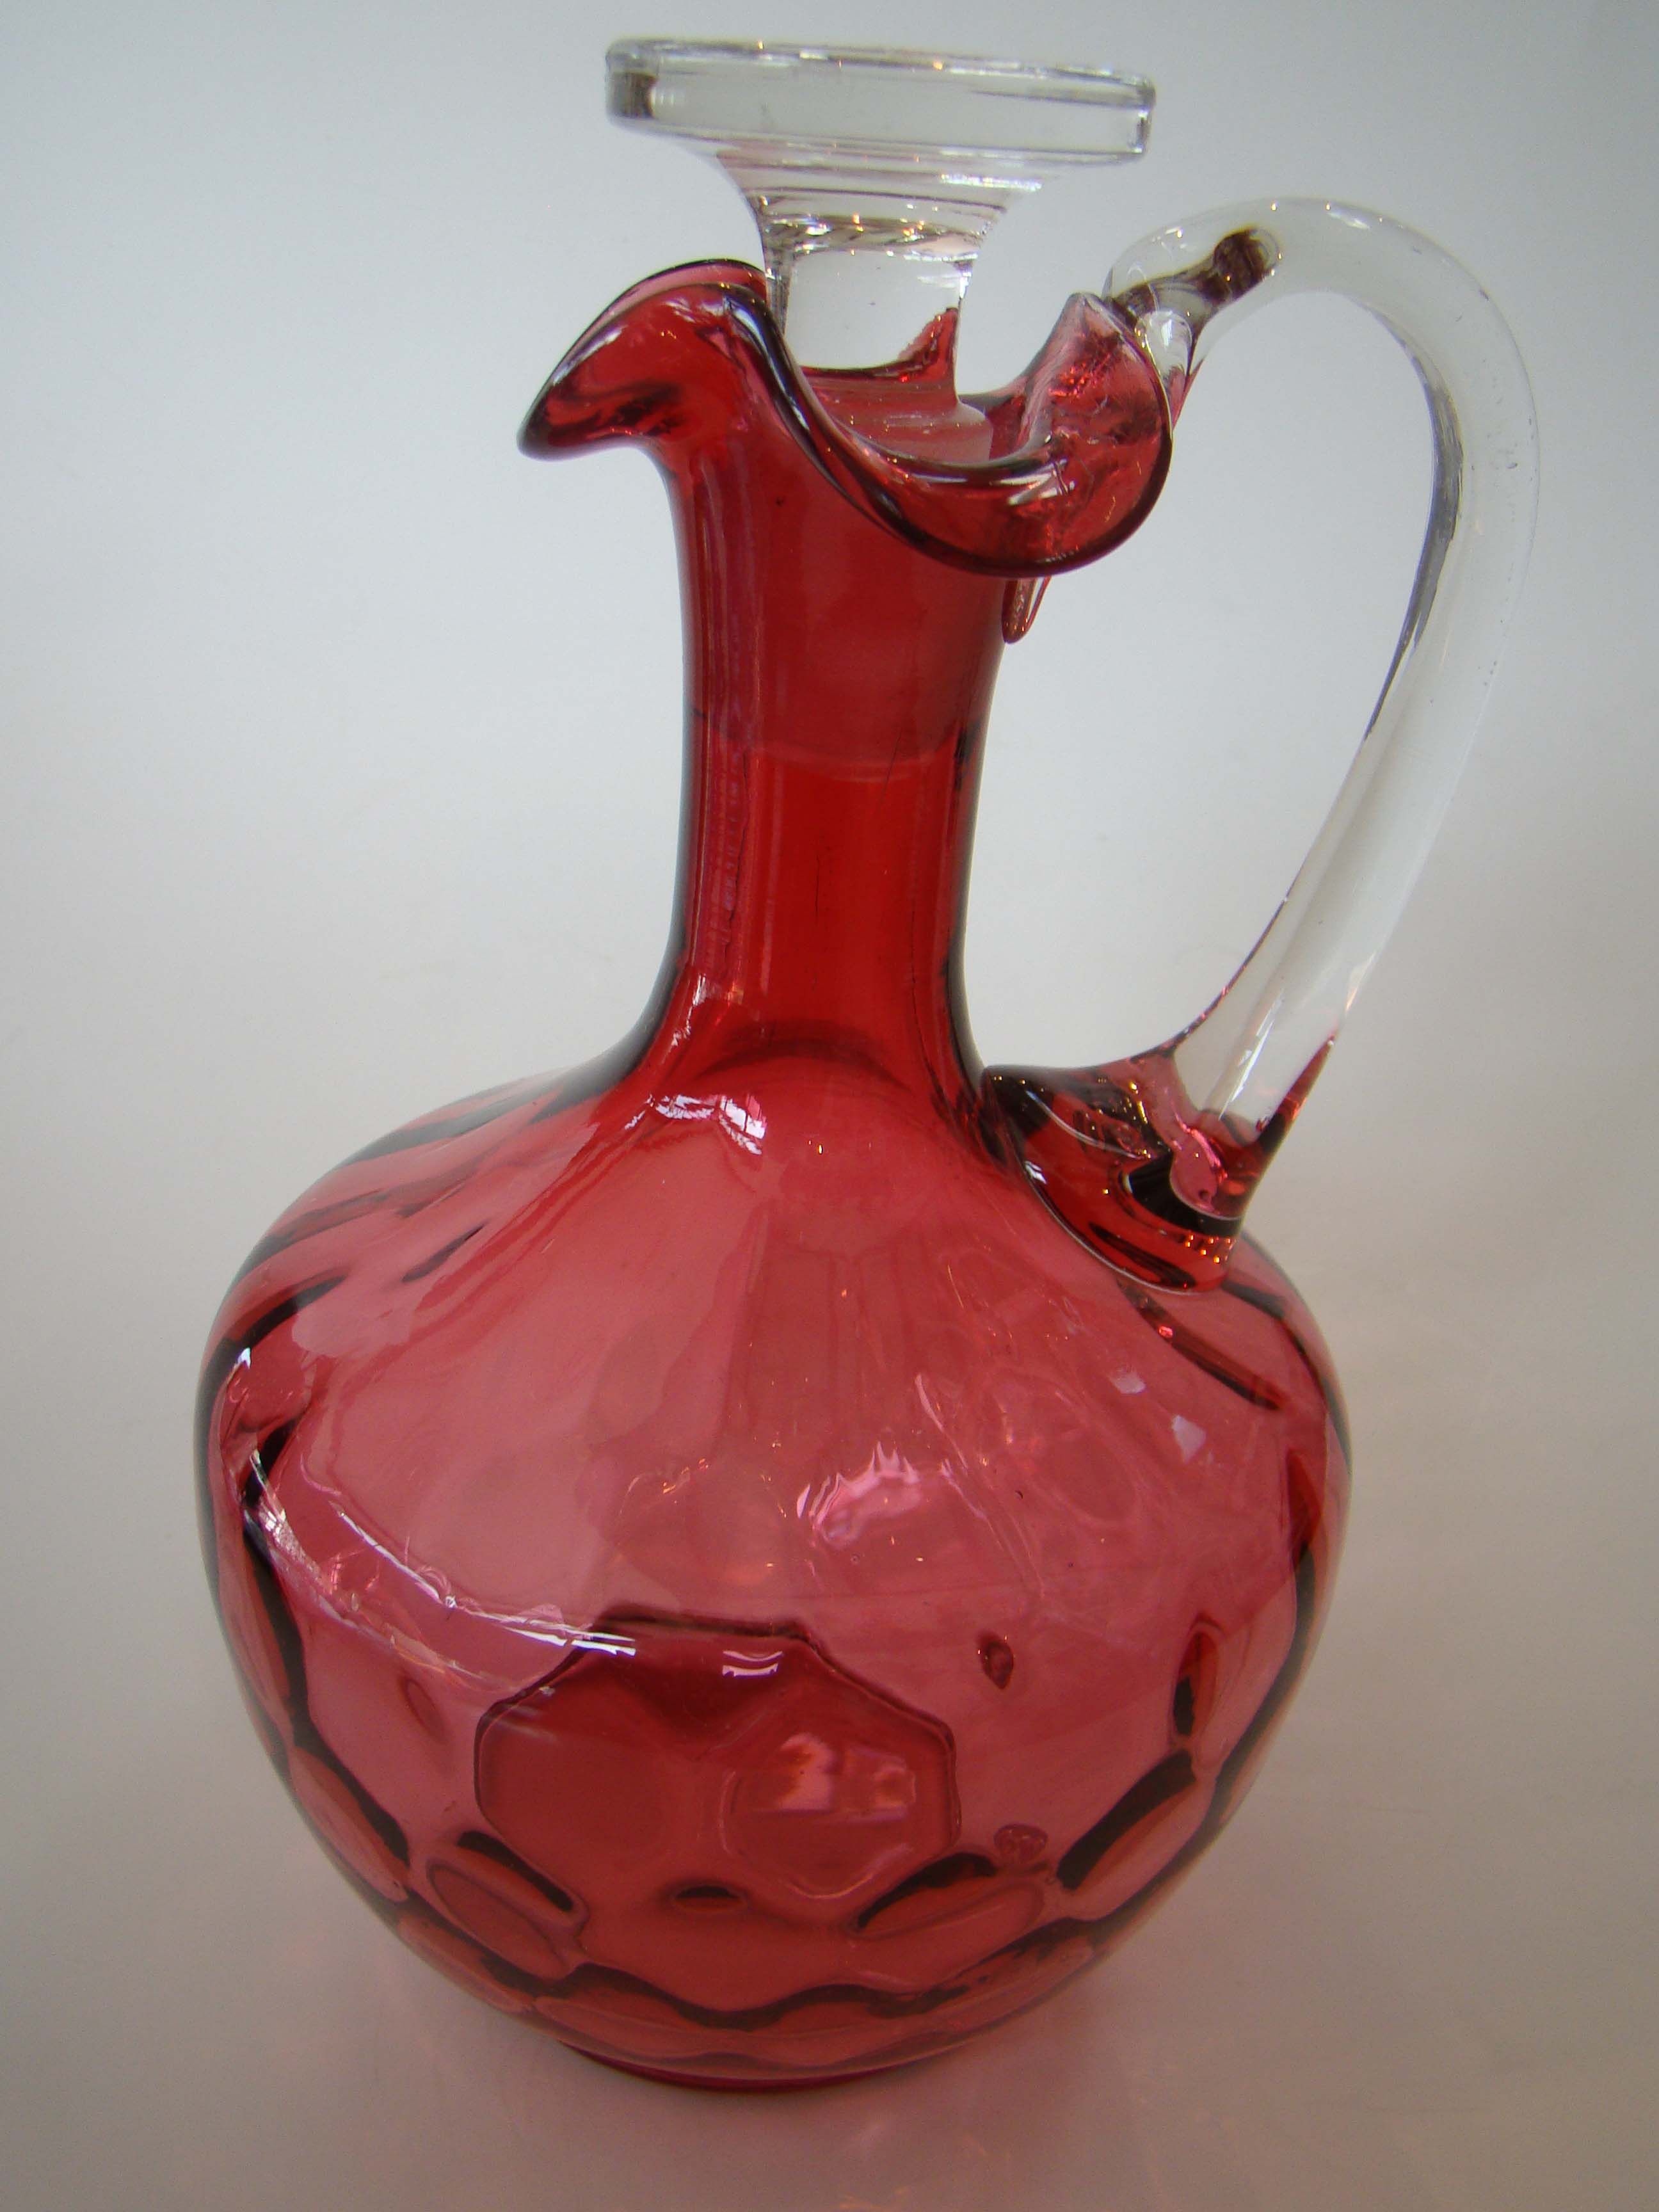 click to view detailed description of A beautiful vintage cranberry glass decanter